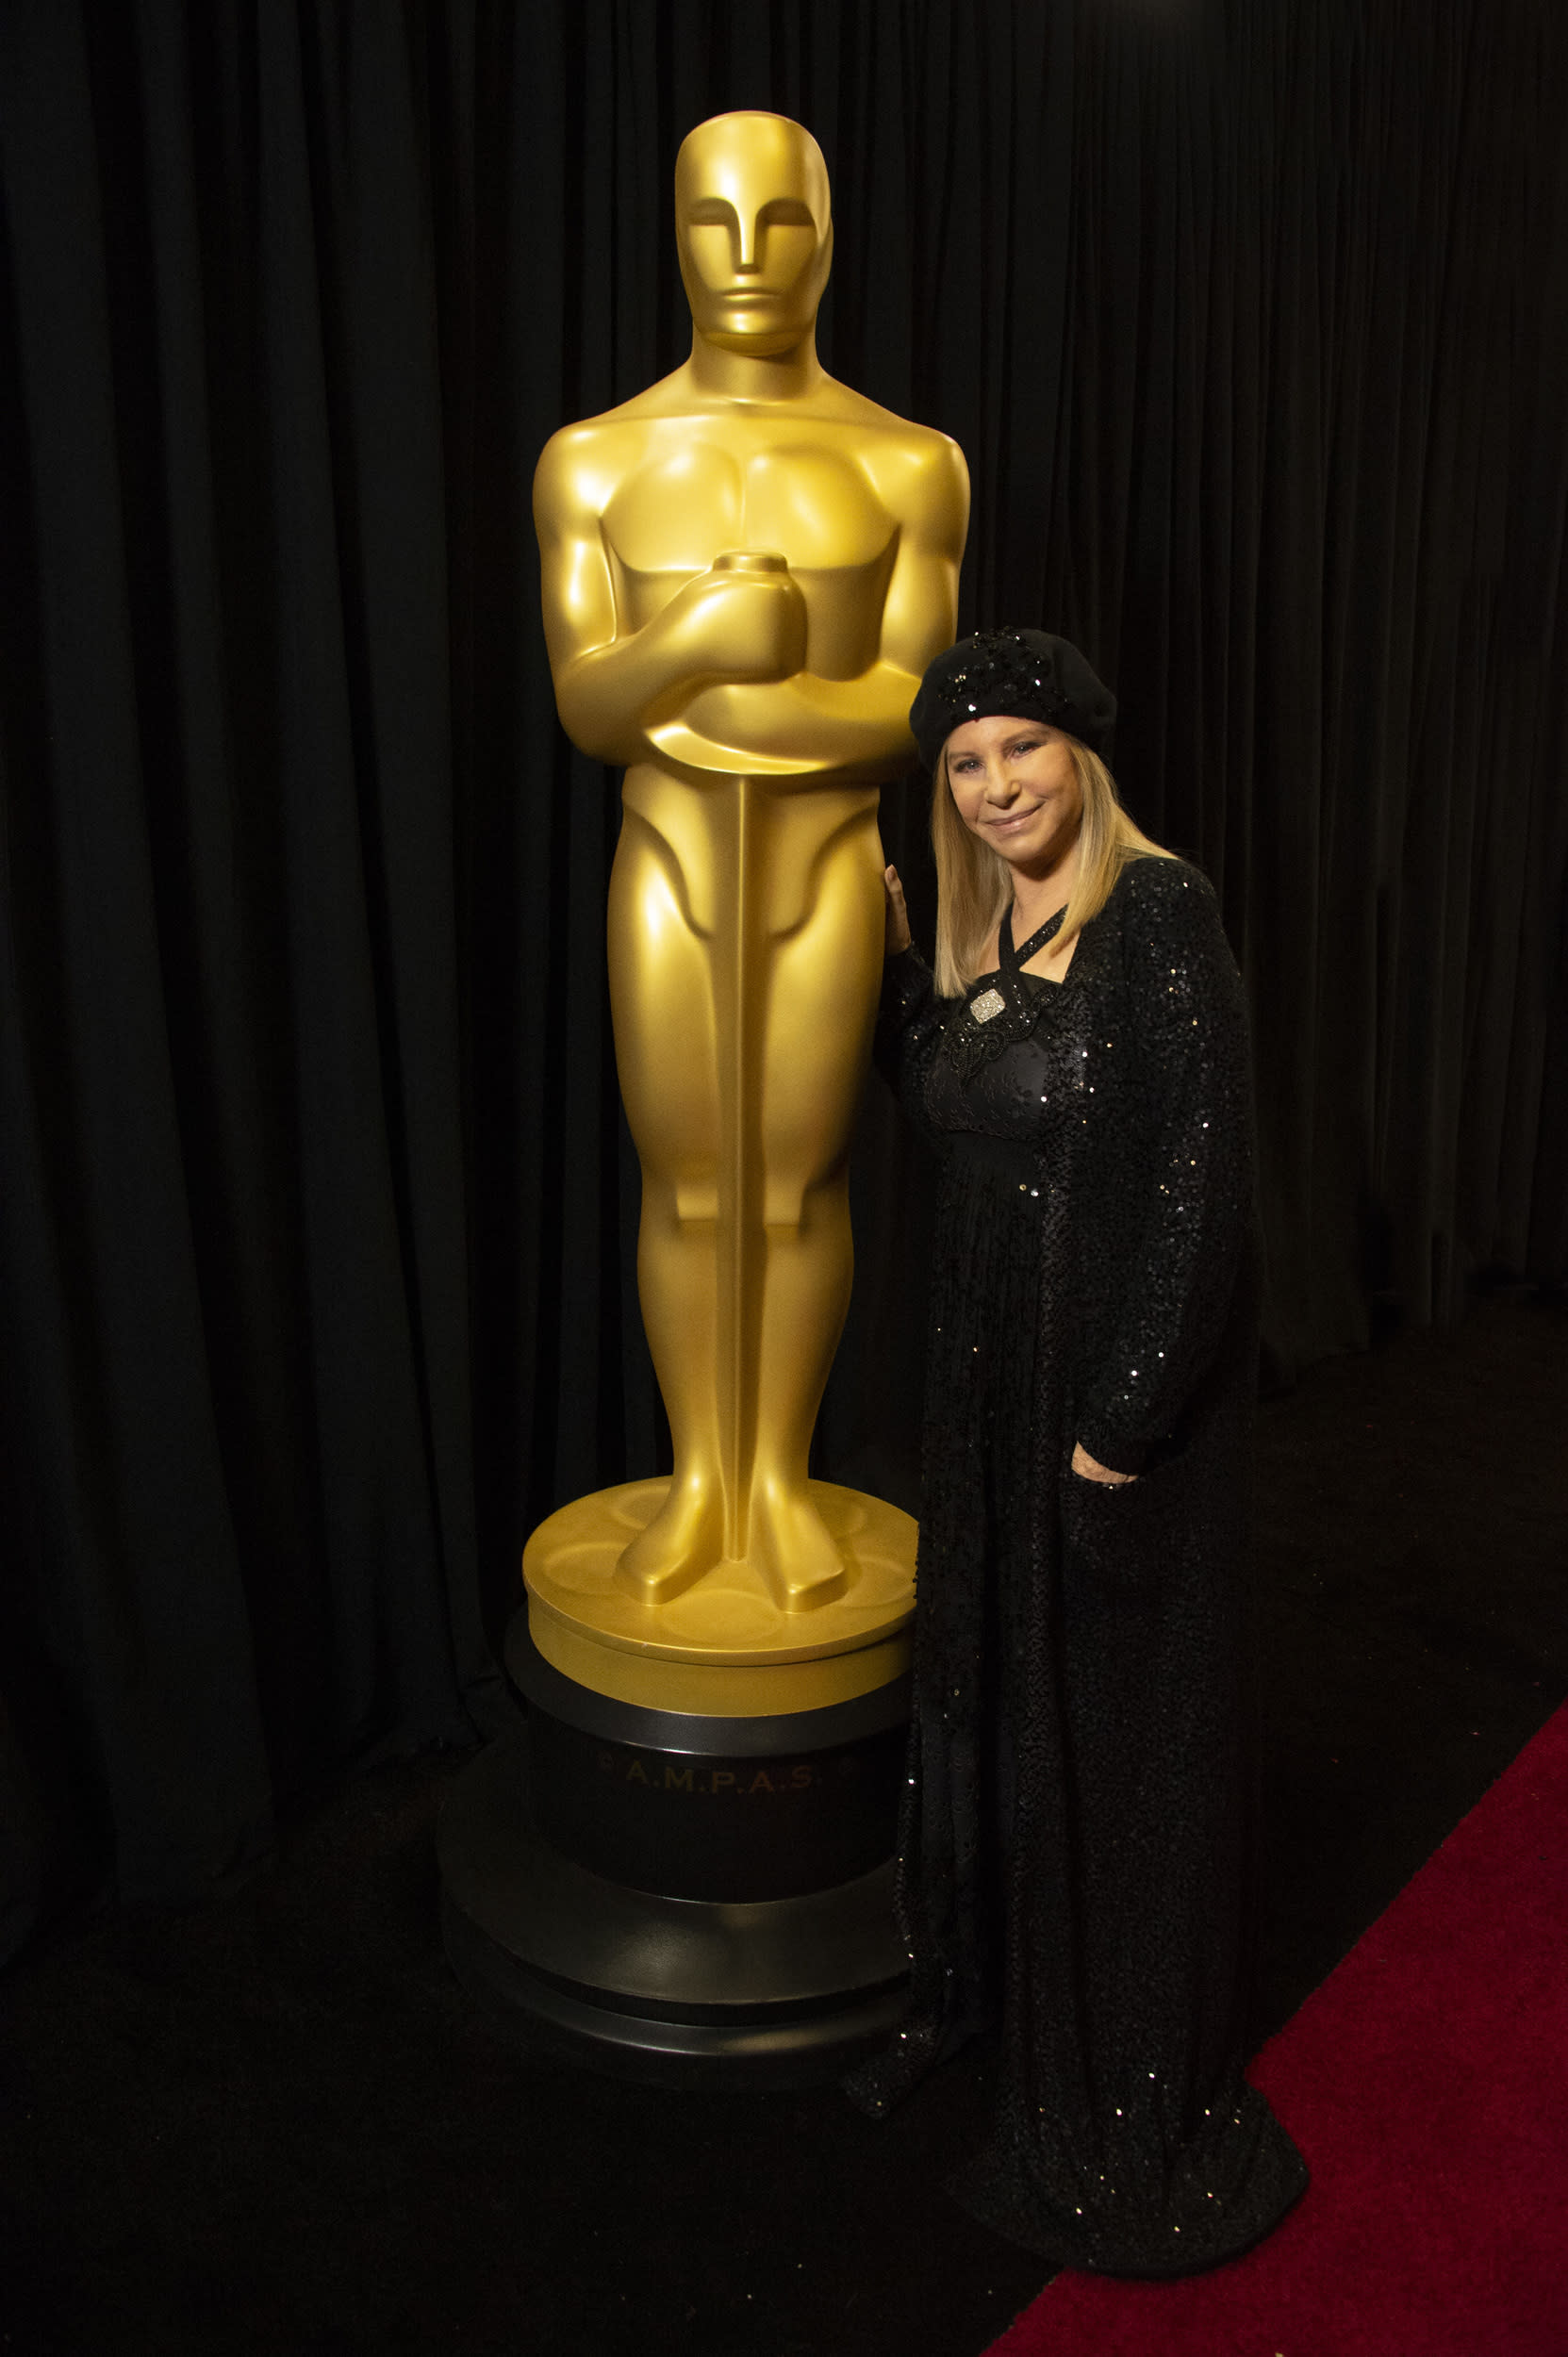 THE OSCARS® - The 91st Oscars® broadcasts live on Sunday, Feb. 24, 2019, at the Dolby Theatre® at Hollywood & Highland Center® in Hollywood and will be televised live on The ABC Television Network at 8:00 p.m. EST/5:00 p.m. PST. Ms. Streisand is wearing a vintage Chanel gown made of leather and sequins. The long sequin sweater is an old Donna Karan piece from her closet. Additionally the antique pin is hers from many years ago.(Eric McCandless via Getty Images)BARBRA STREISAND